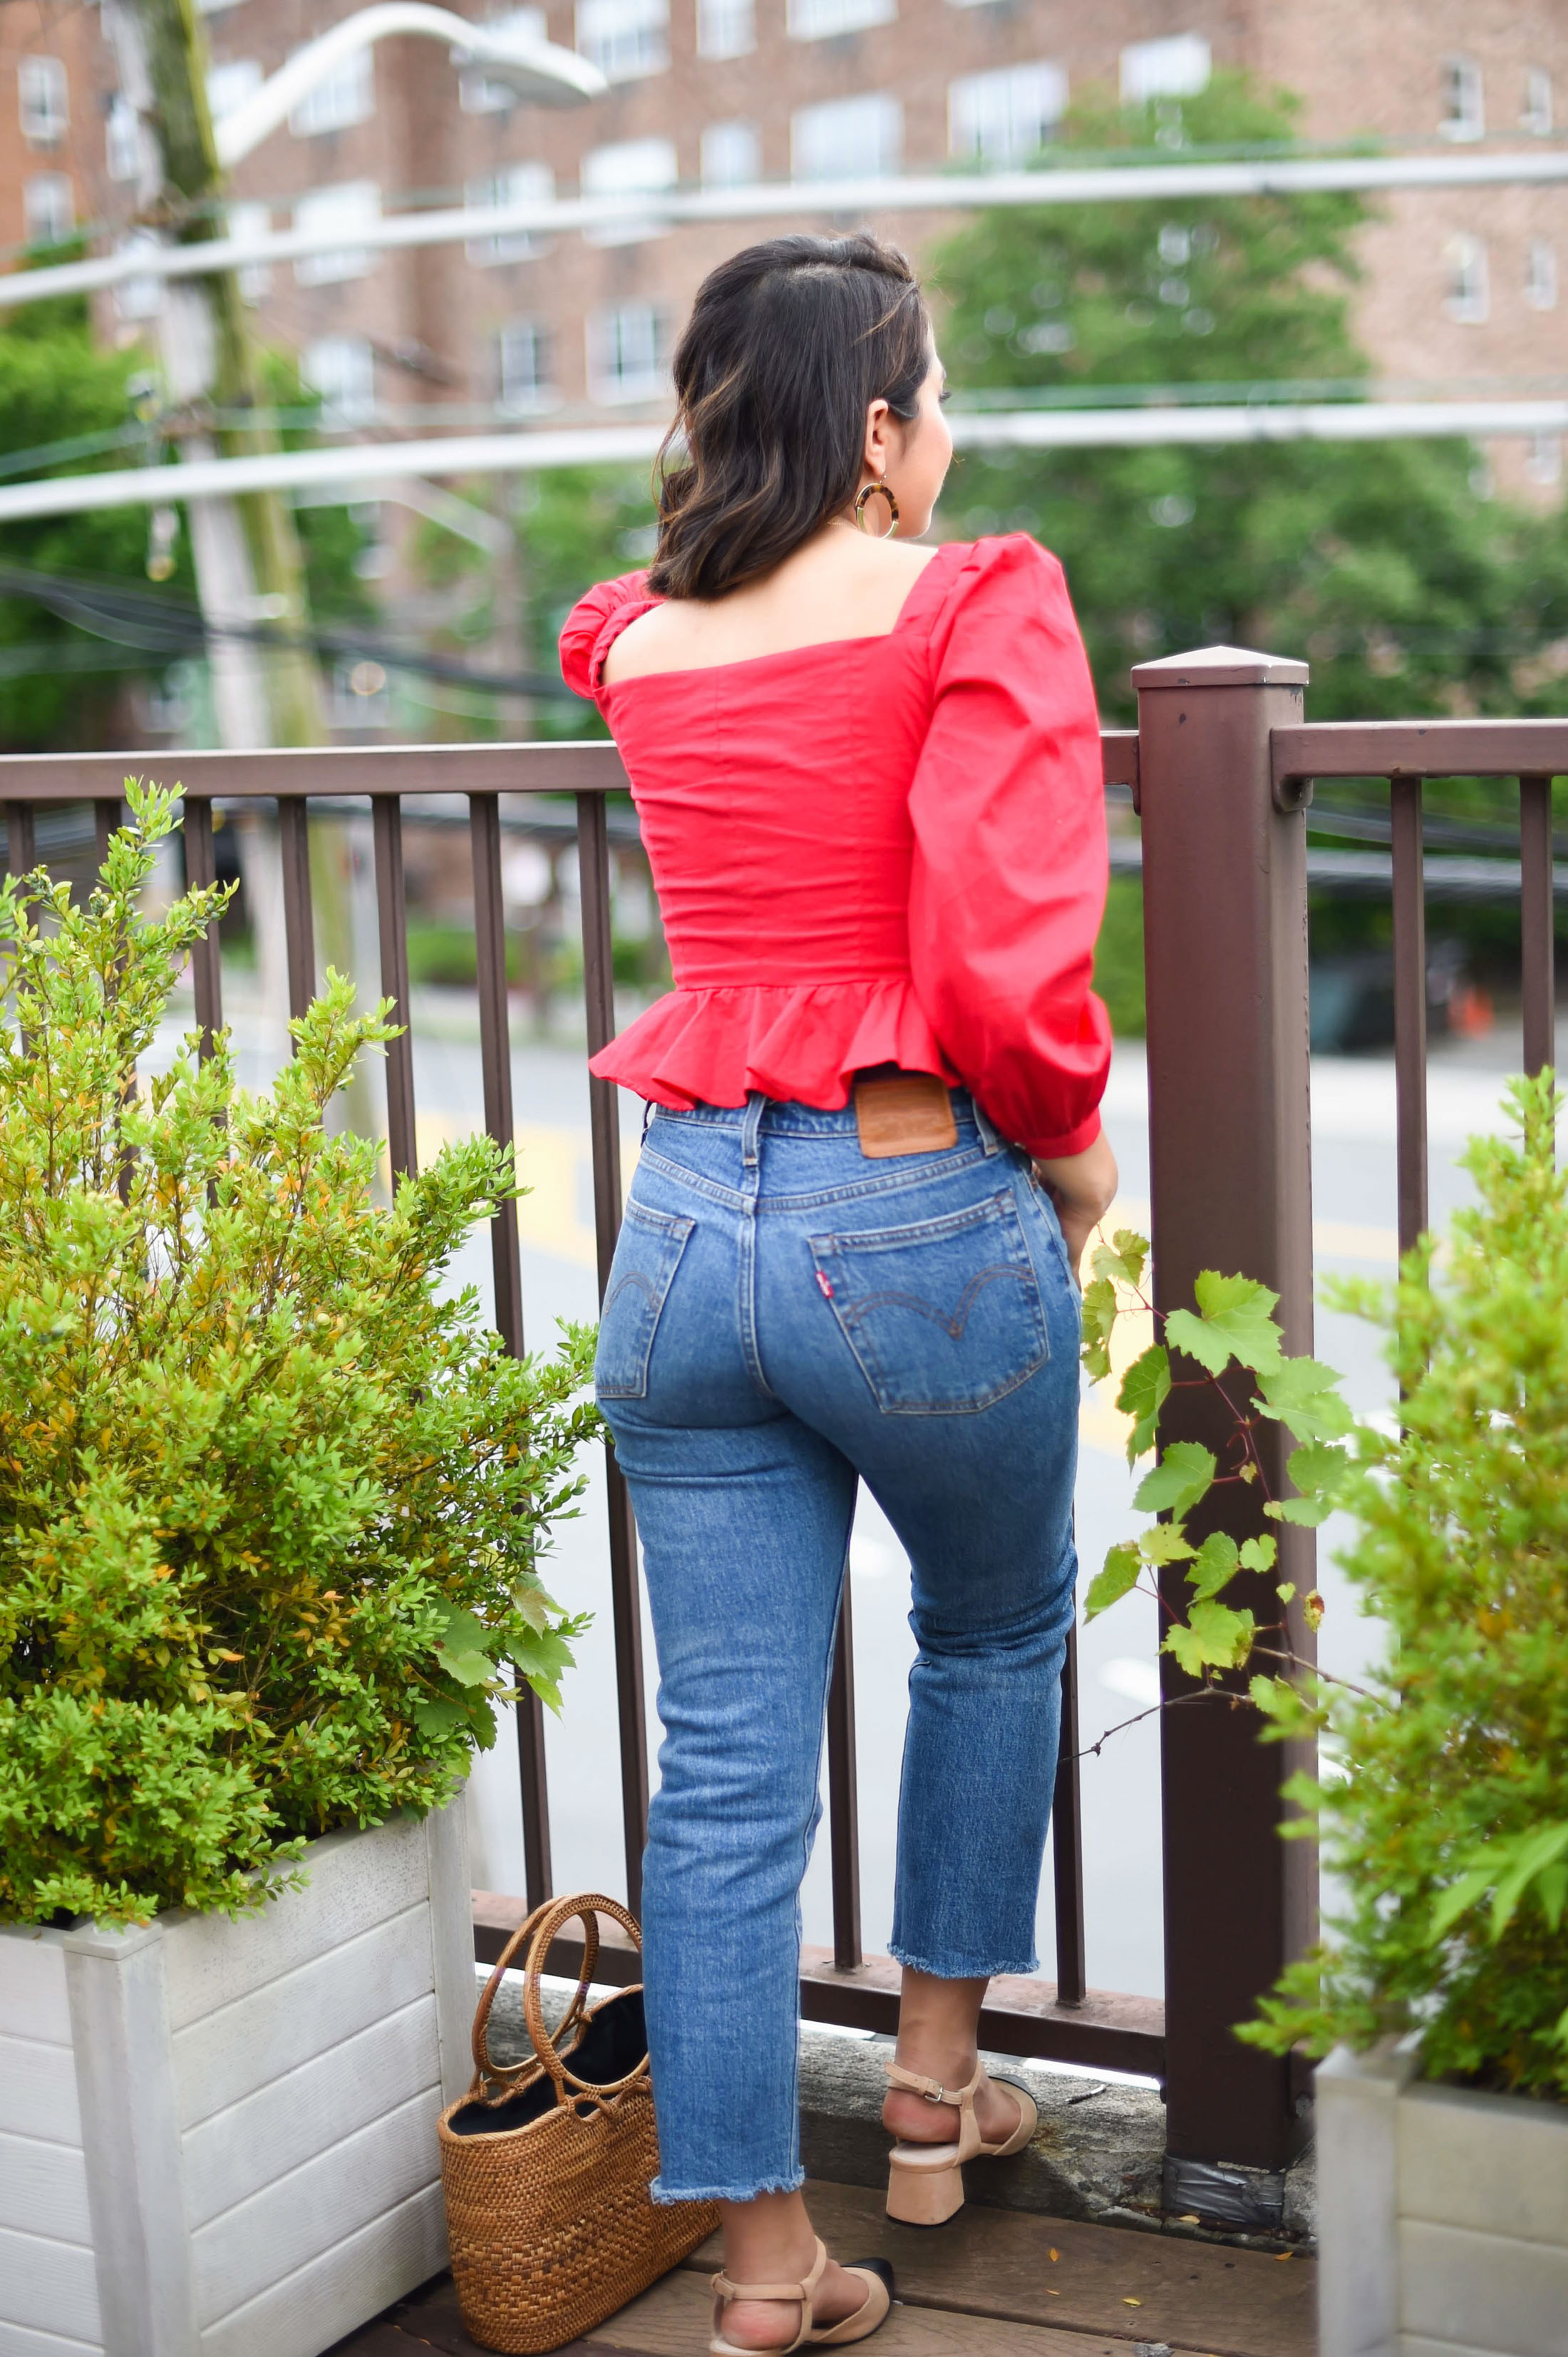 Regular date nights totally call for a go-to jeans-and-heels outfit. These Levi's, a red top & low heels = HOT! Check out our date night outfit formula.